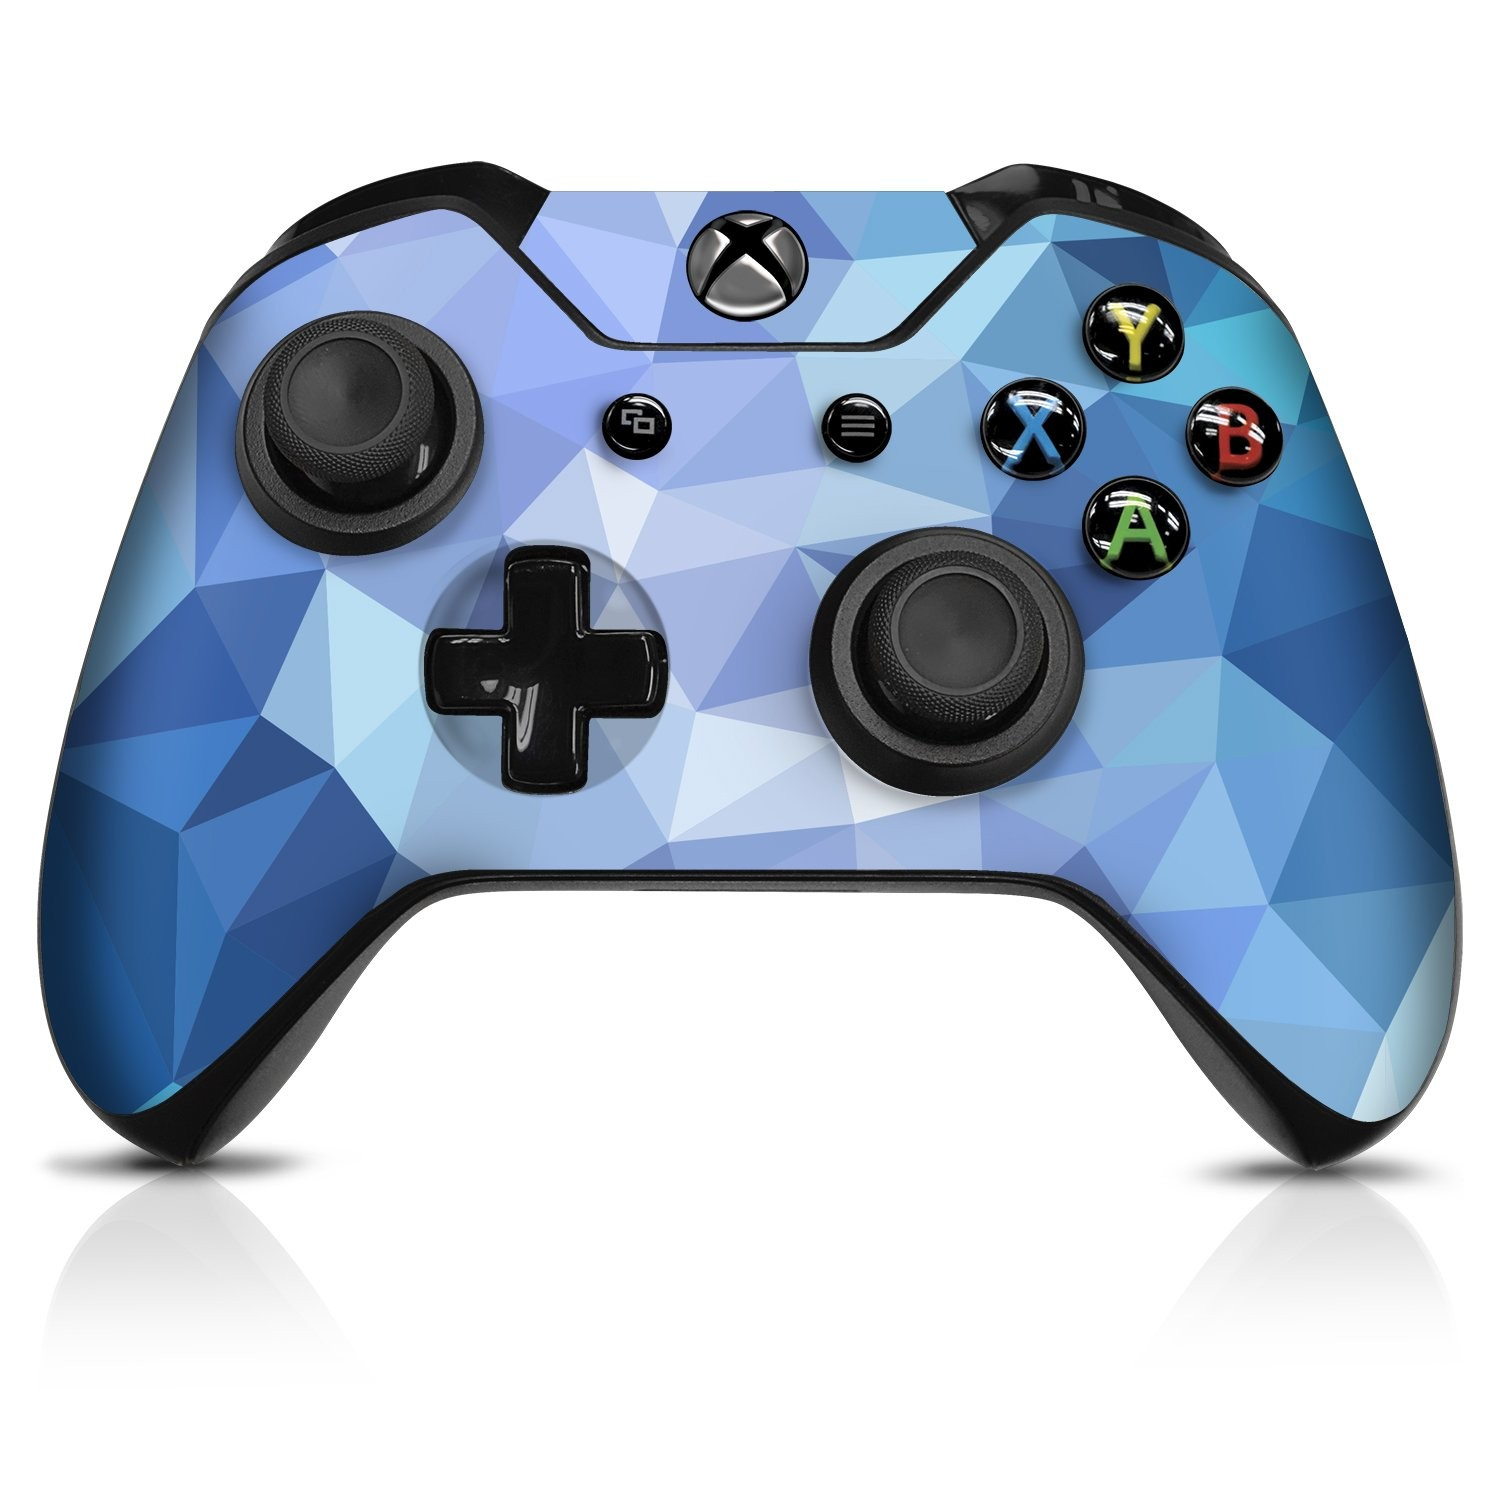 Blue Poly Xbox One Controller Skin - Officially Licensed by Xbox - Controller Gear